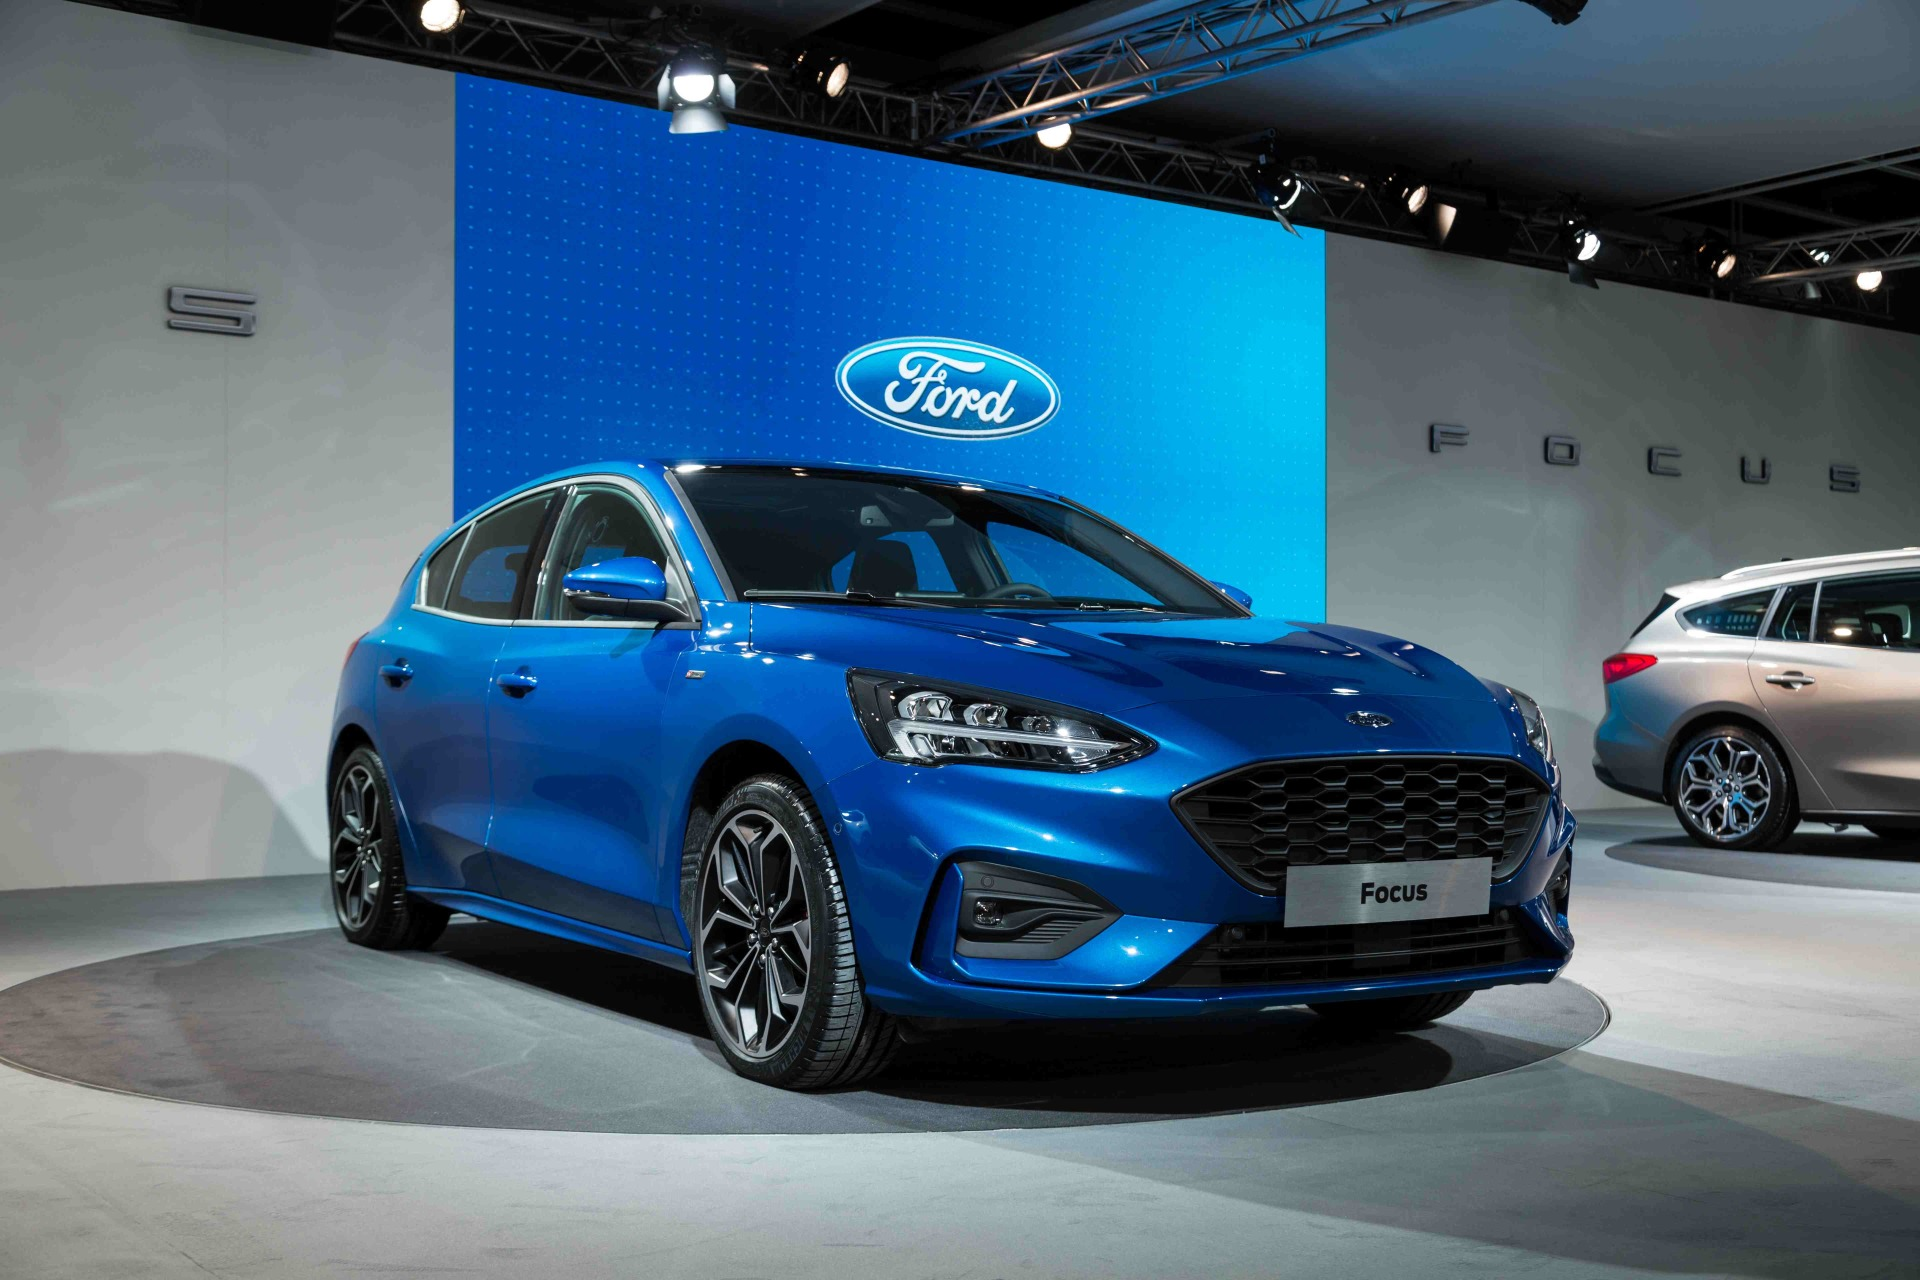 ford focus 4 2018 a bord de la nouvelle focus en vid o photo 7 l 39 argus. Black Bedroom Furniture Sets. Home Design Ideas